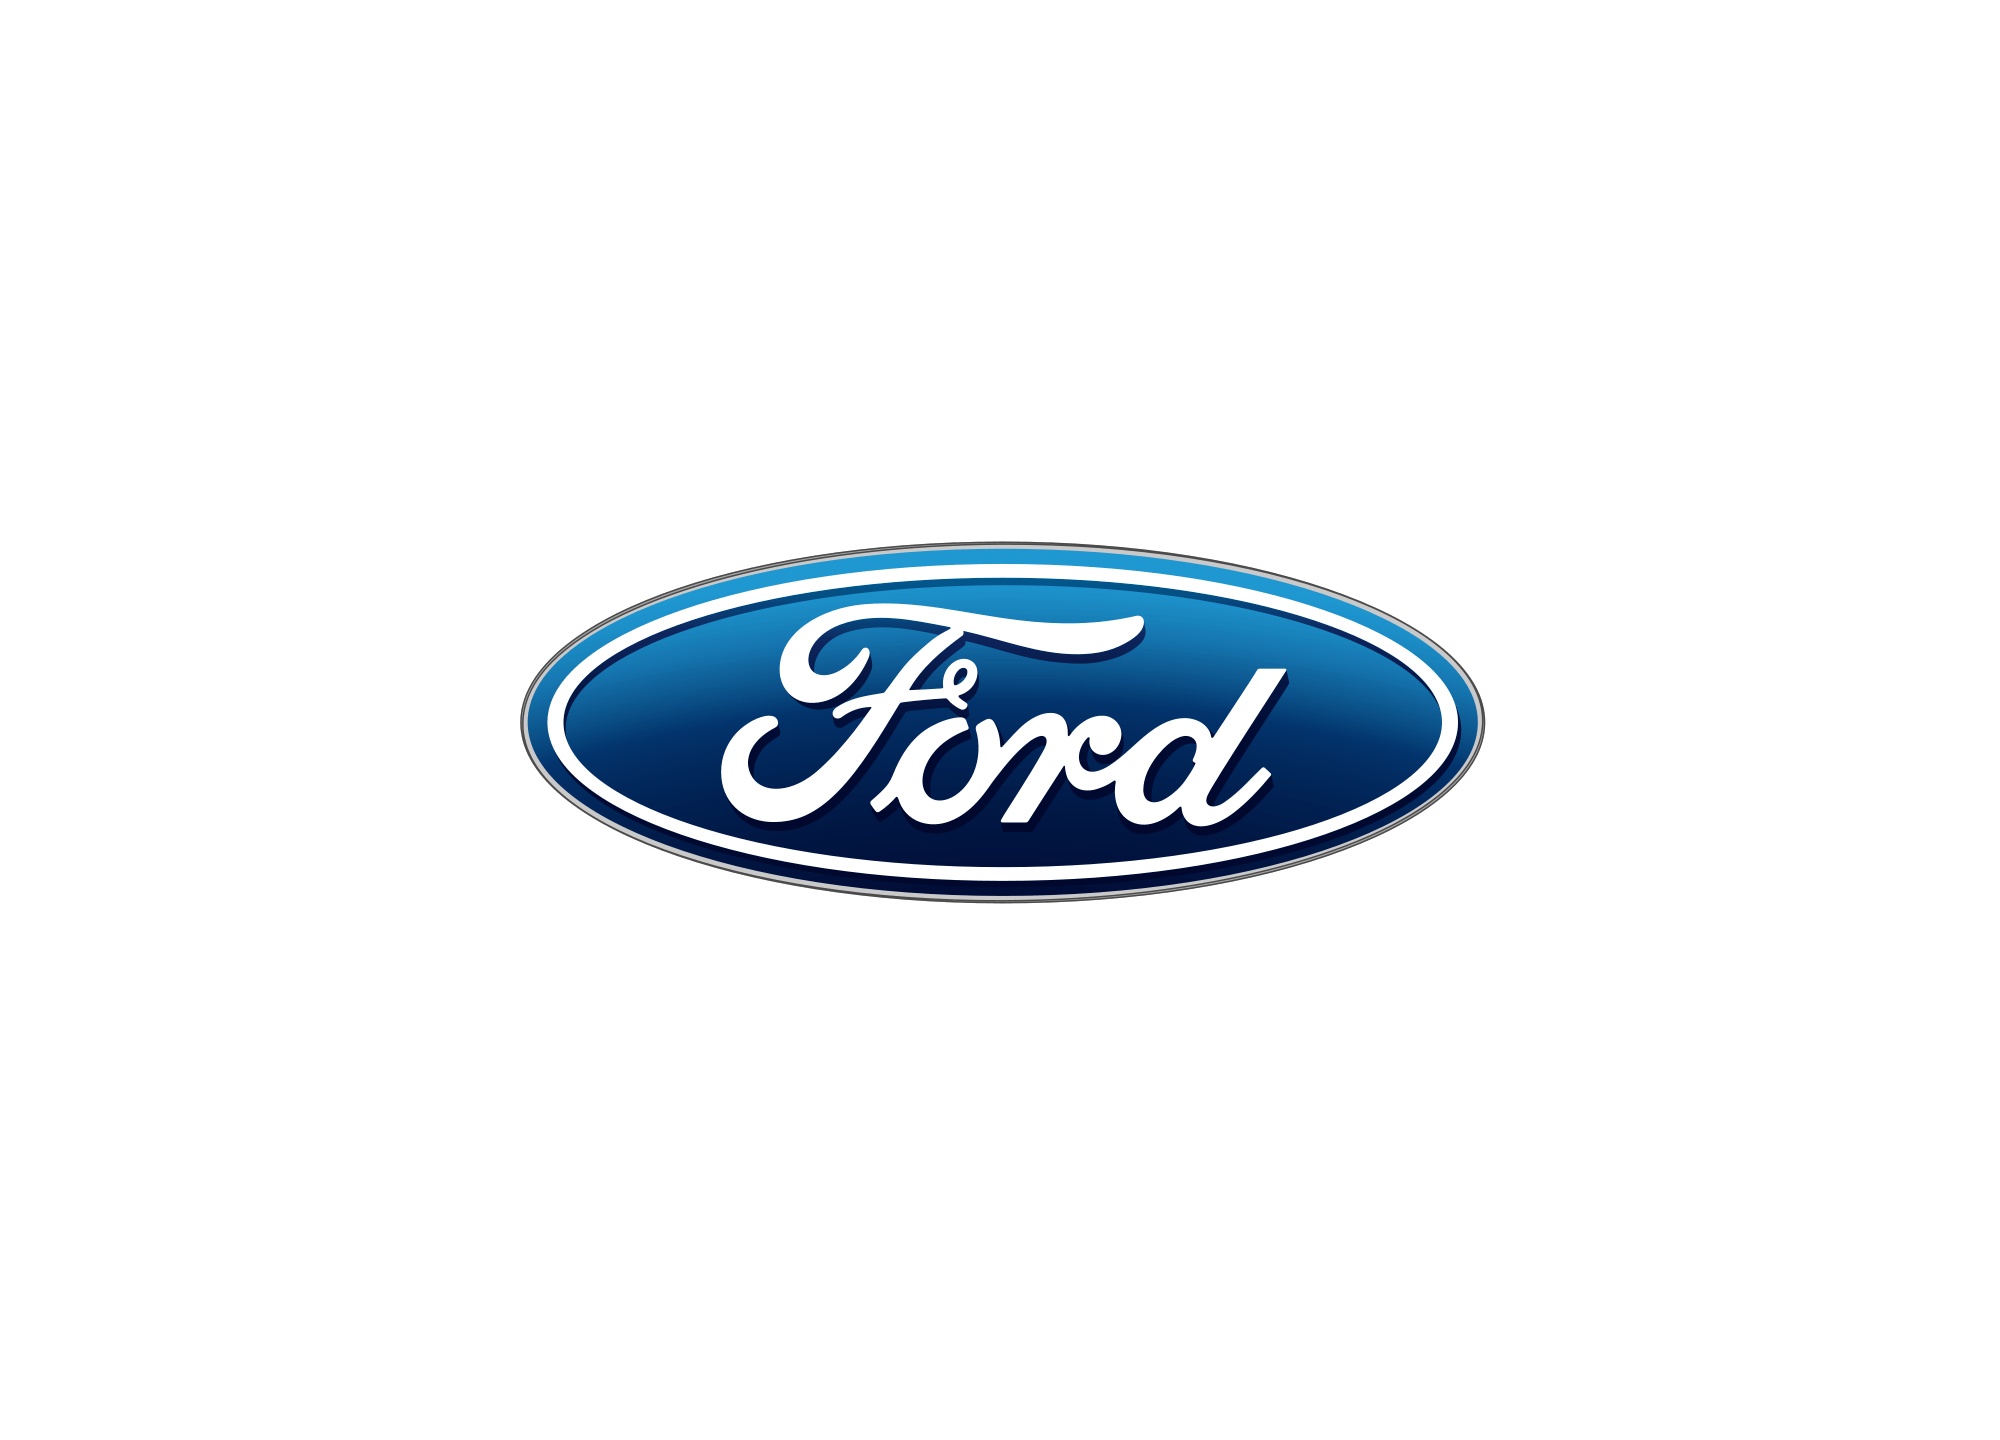 Ford Logo - Ford-logo - Lexington Communications